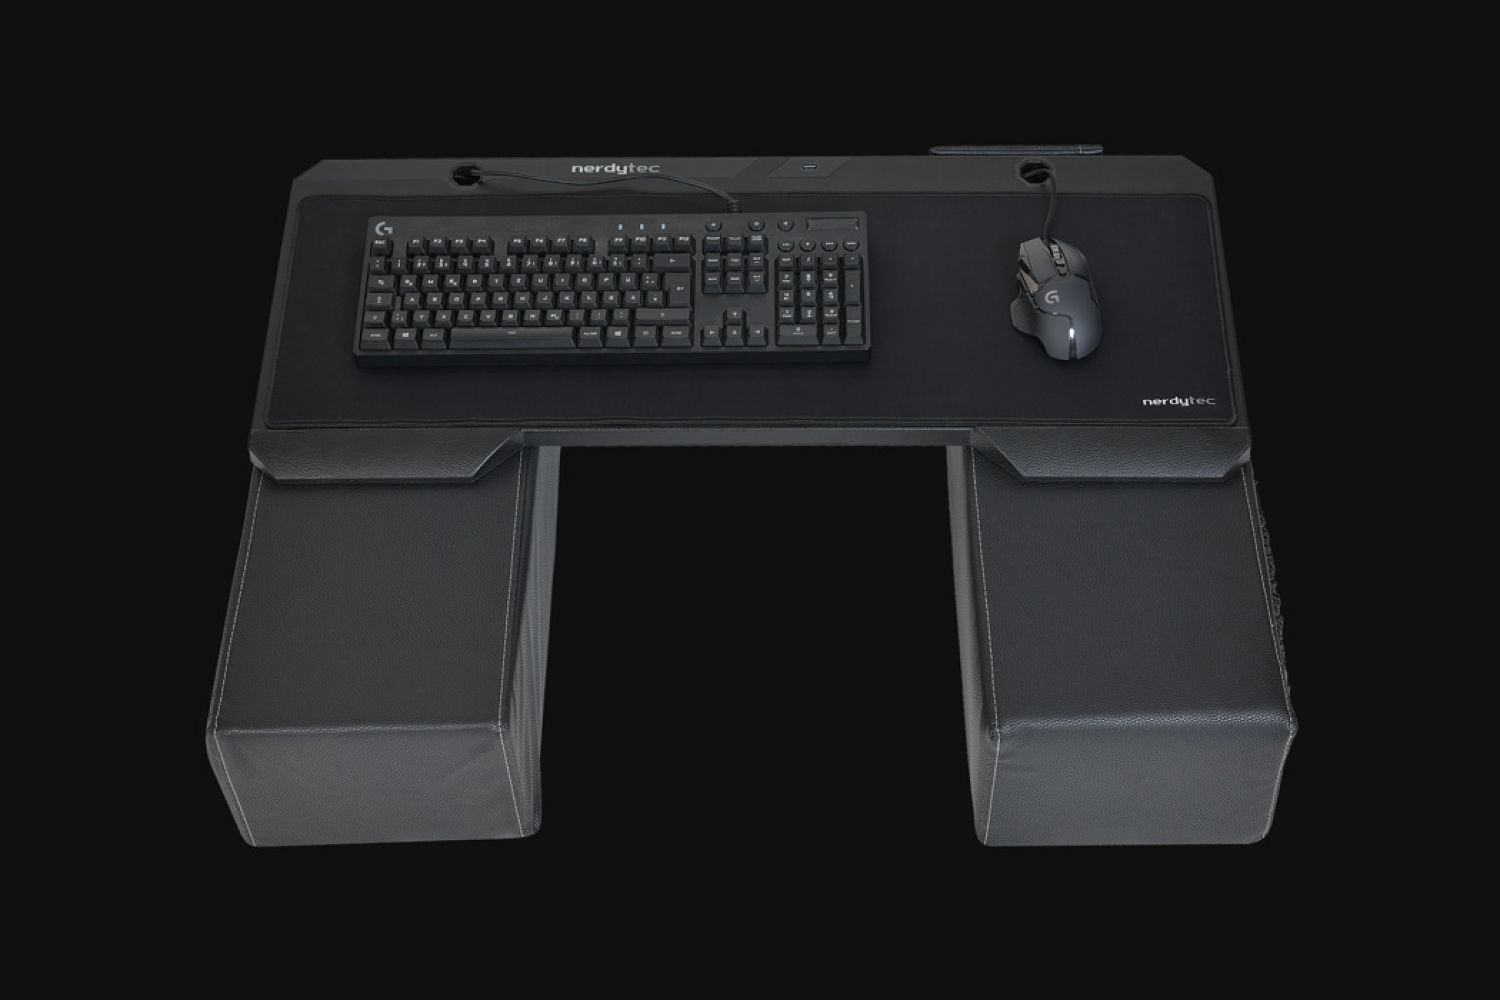 XXL Gaming Mouse Pad